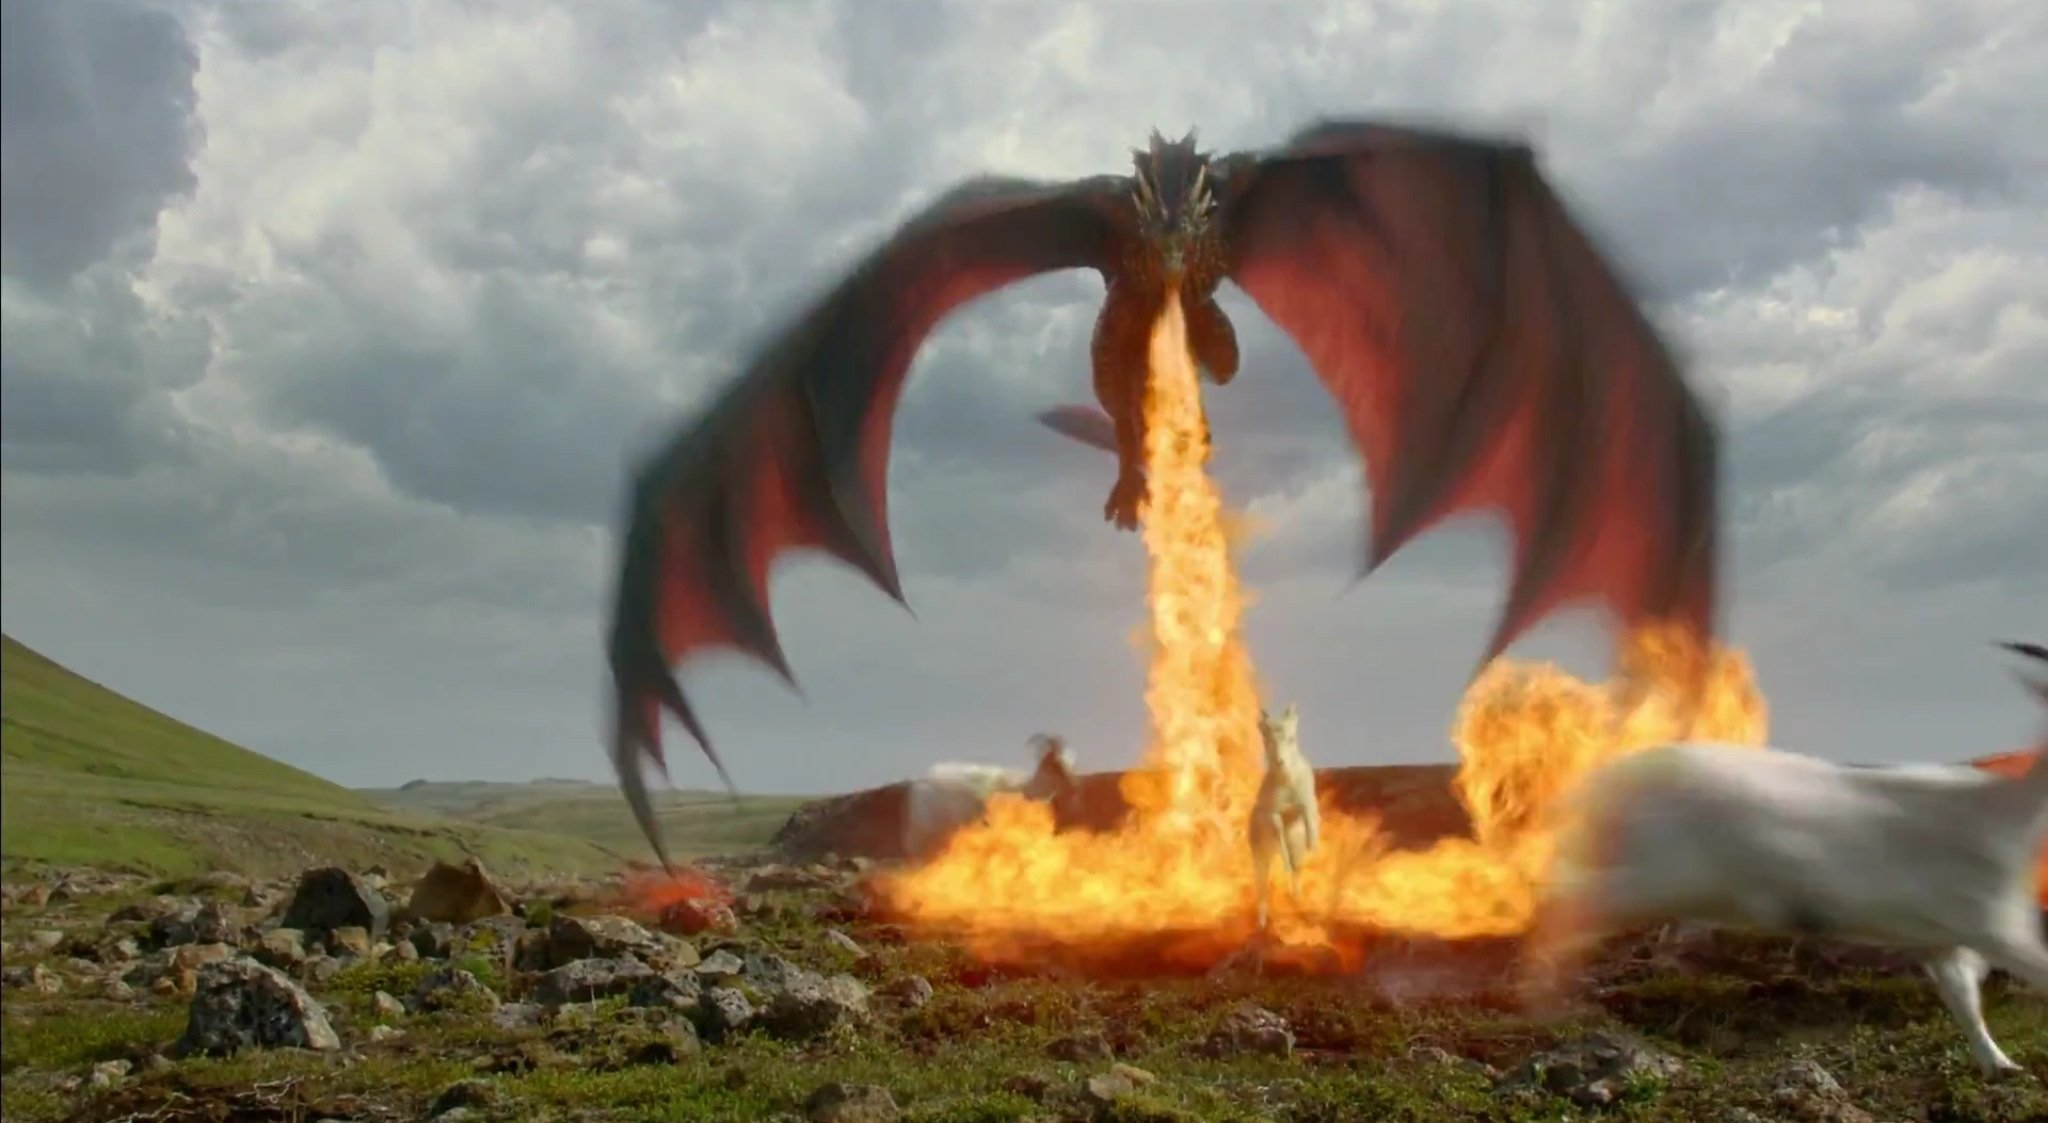 Drogon torches a goat in the Game of Thrones season 4 episode